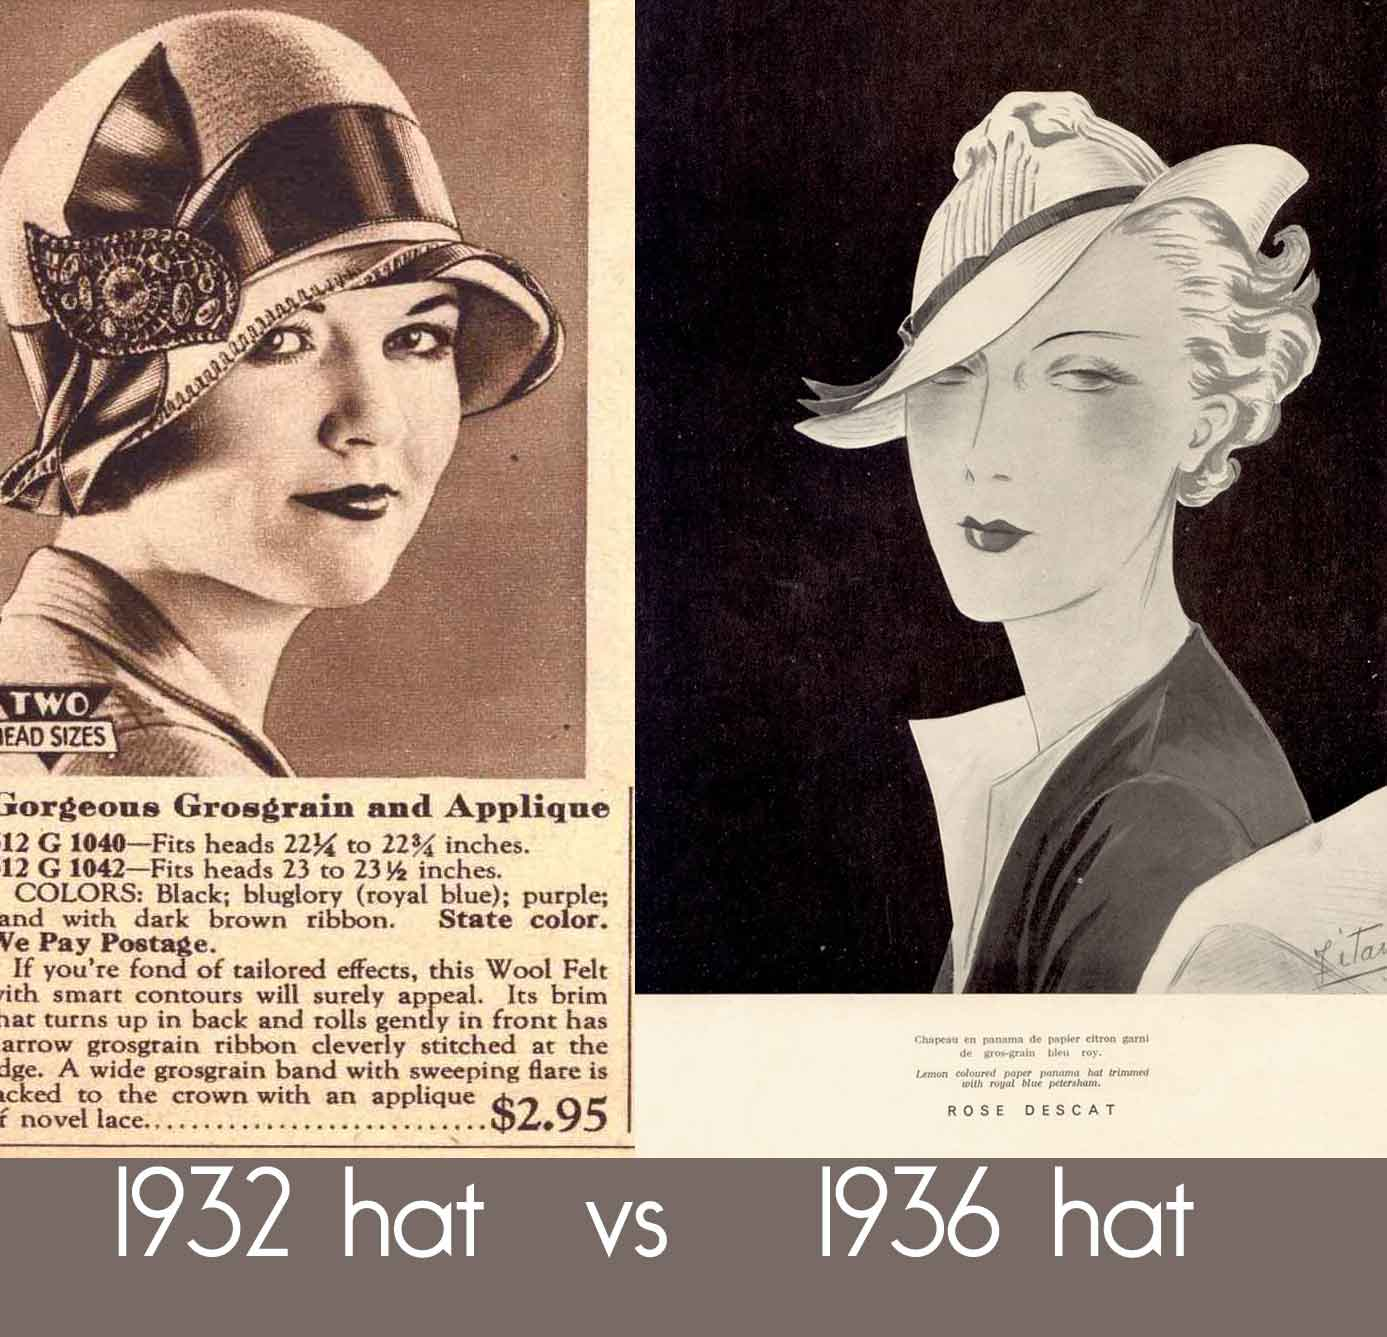 1930s Hats Women http://glamourdaze.com/history-of-womens-fashion